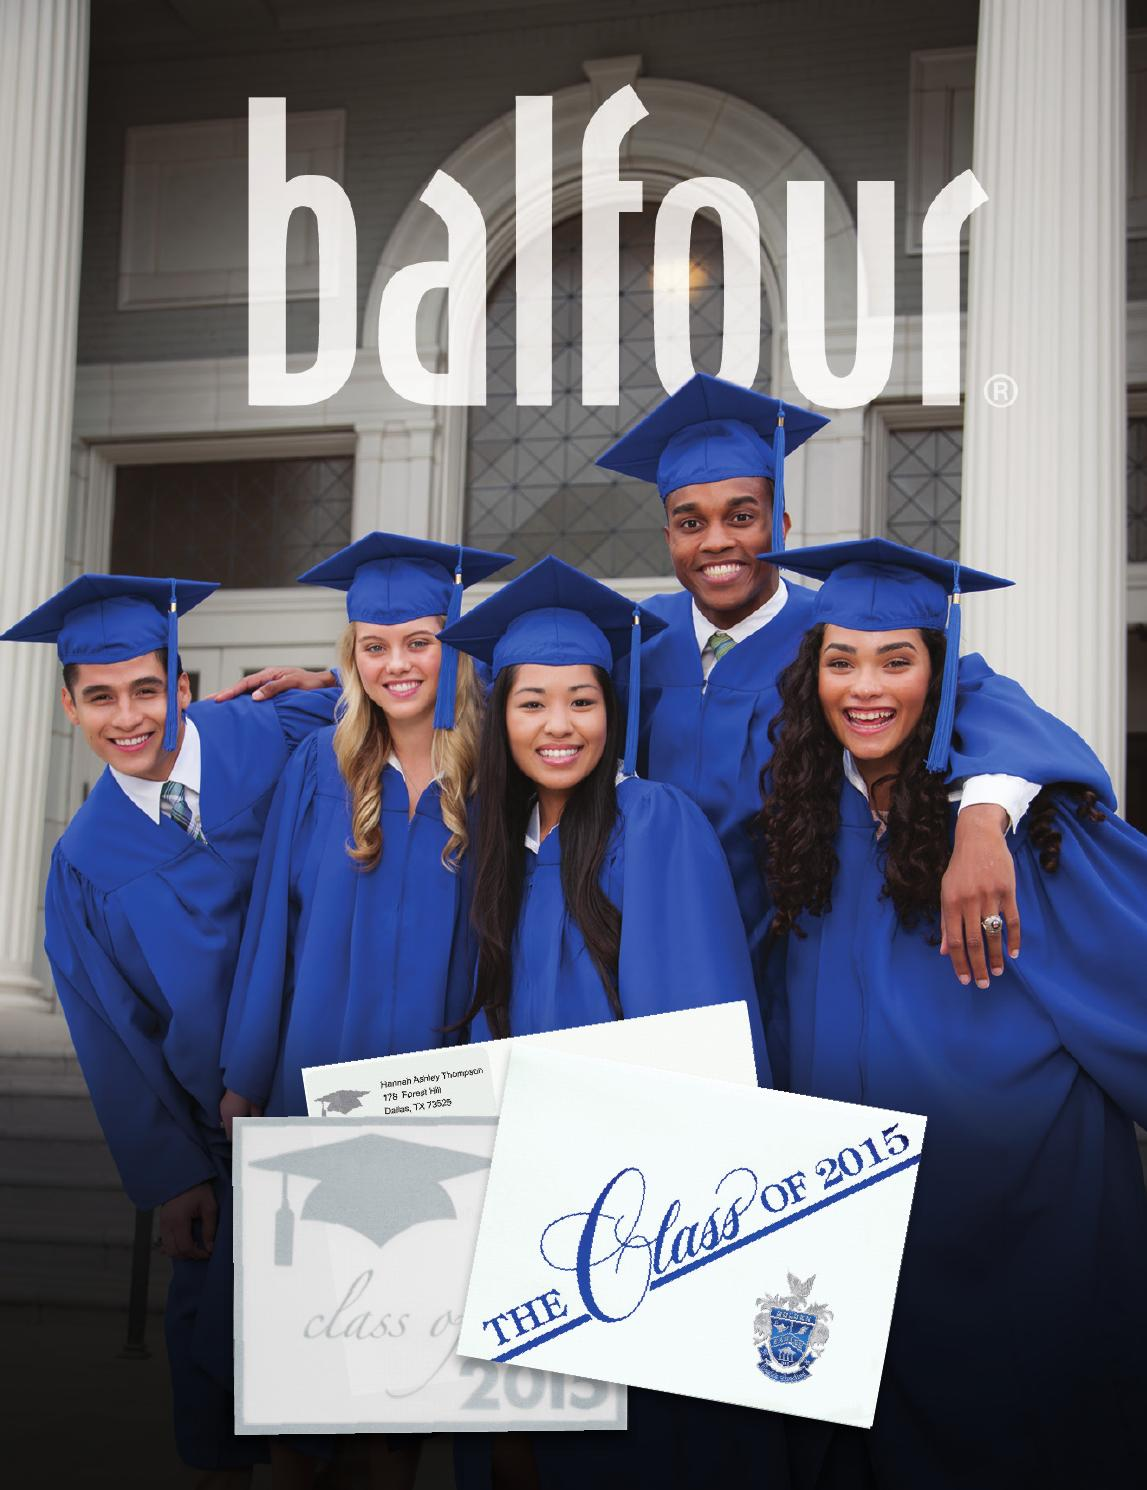 Balfour Graduation Products Brochure 2017 by Balfour - issuu